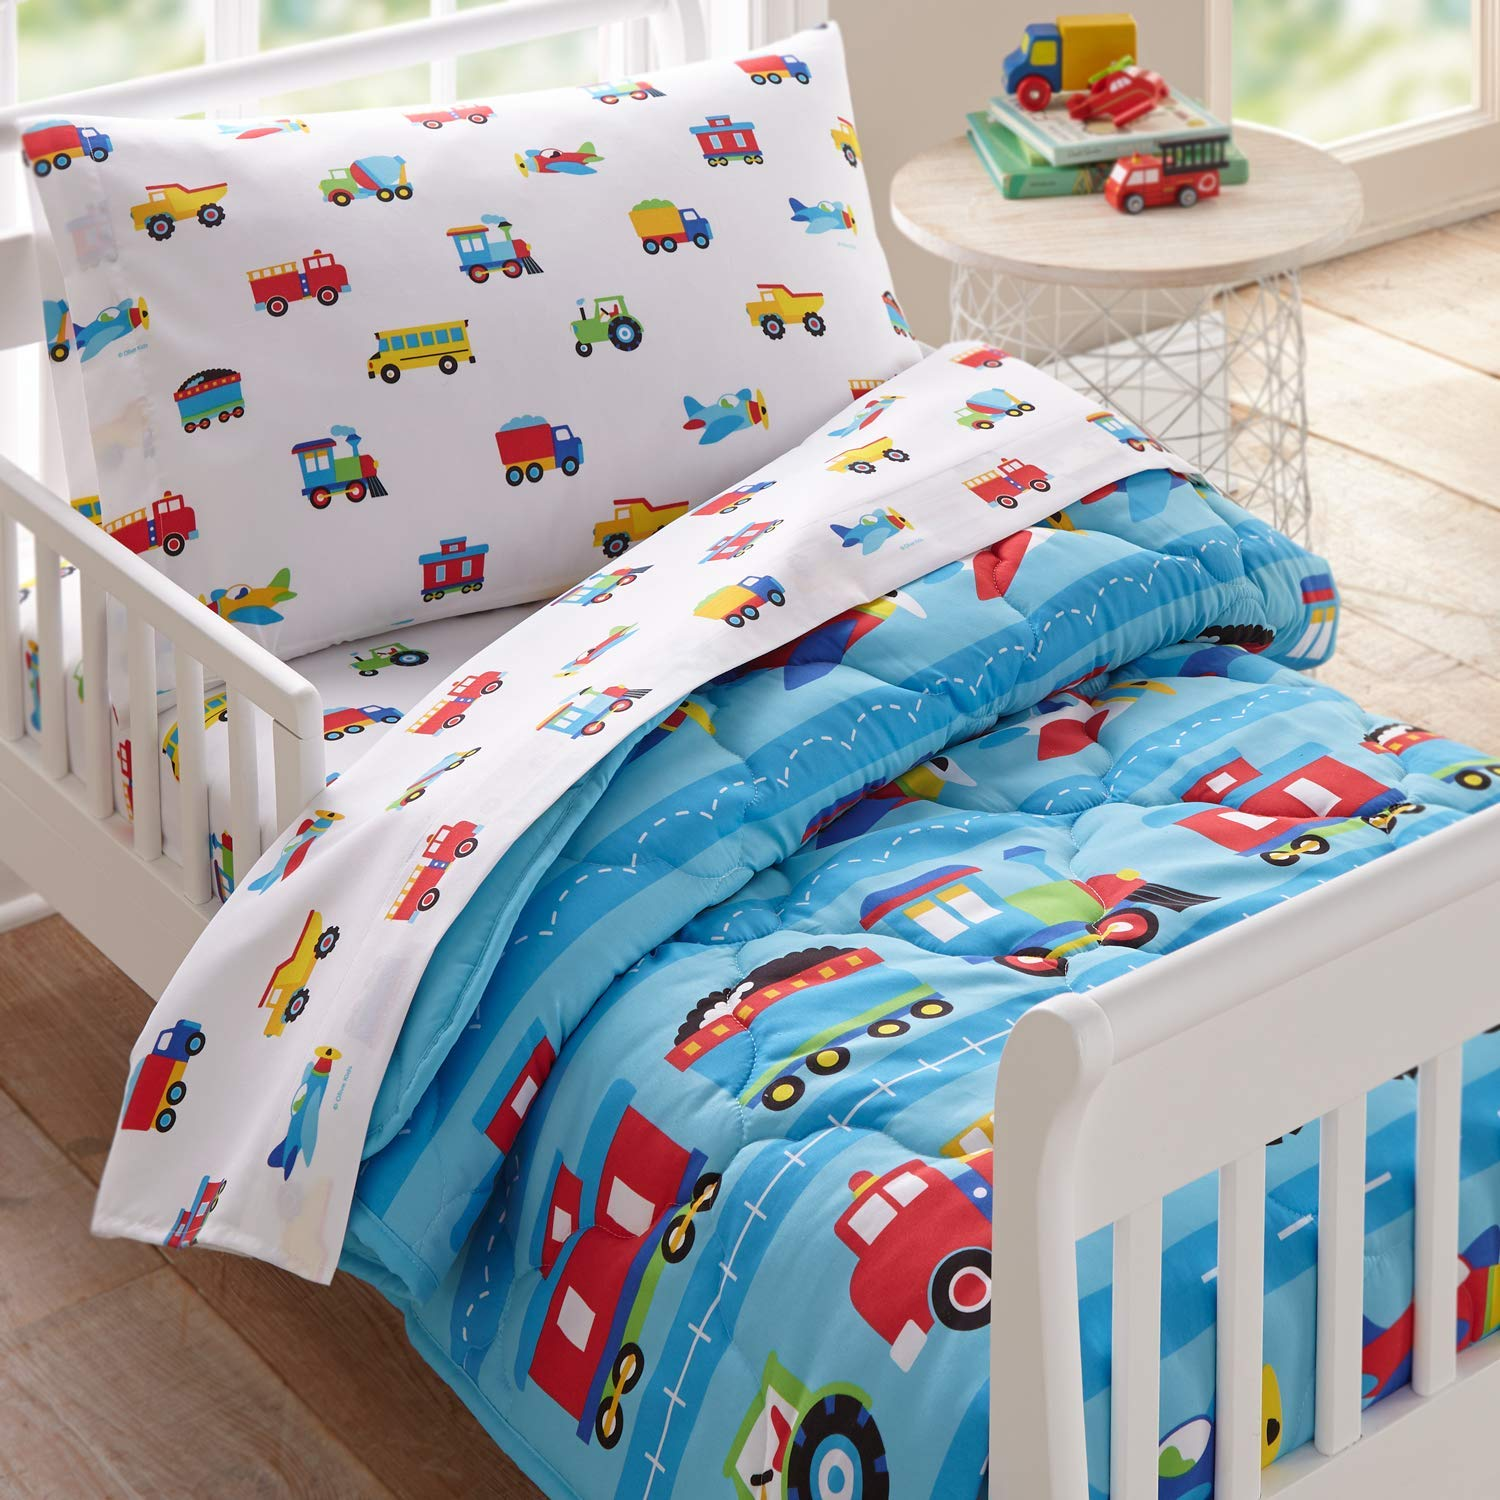 Wildkin Kids 4 Pc Toddler Bed in A Bag for Boys and Girls, Microfiber Bedding Set